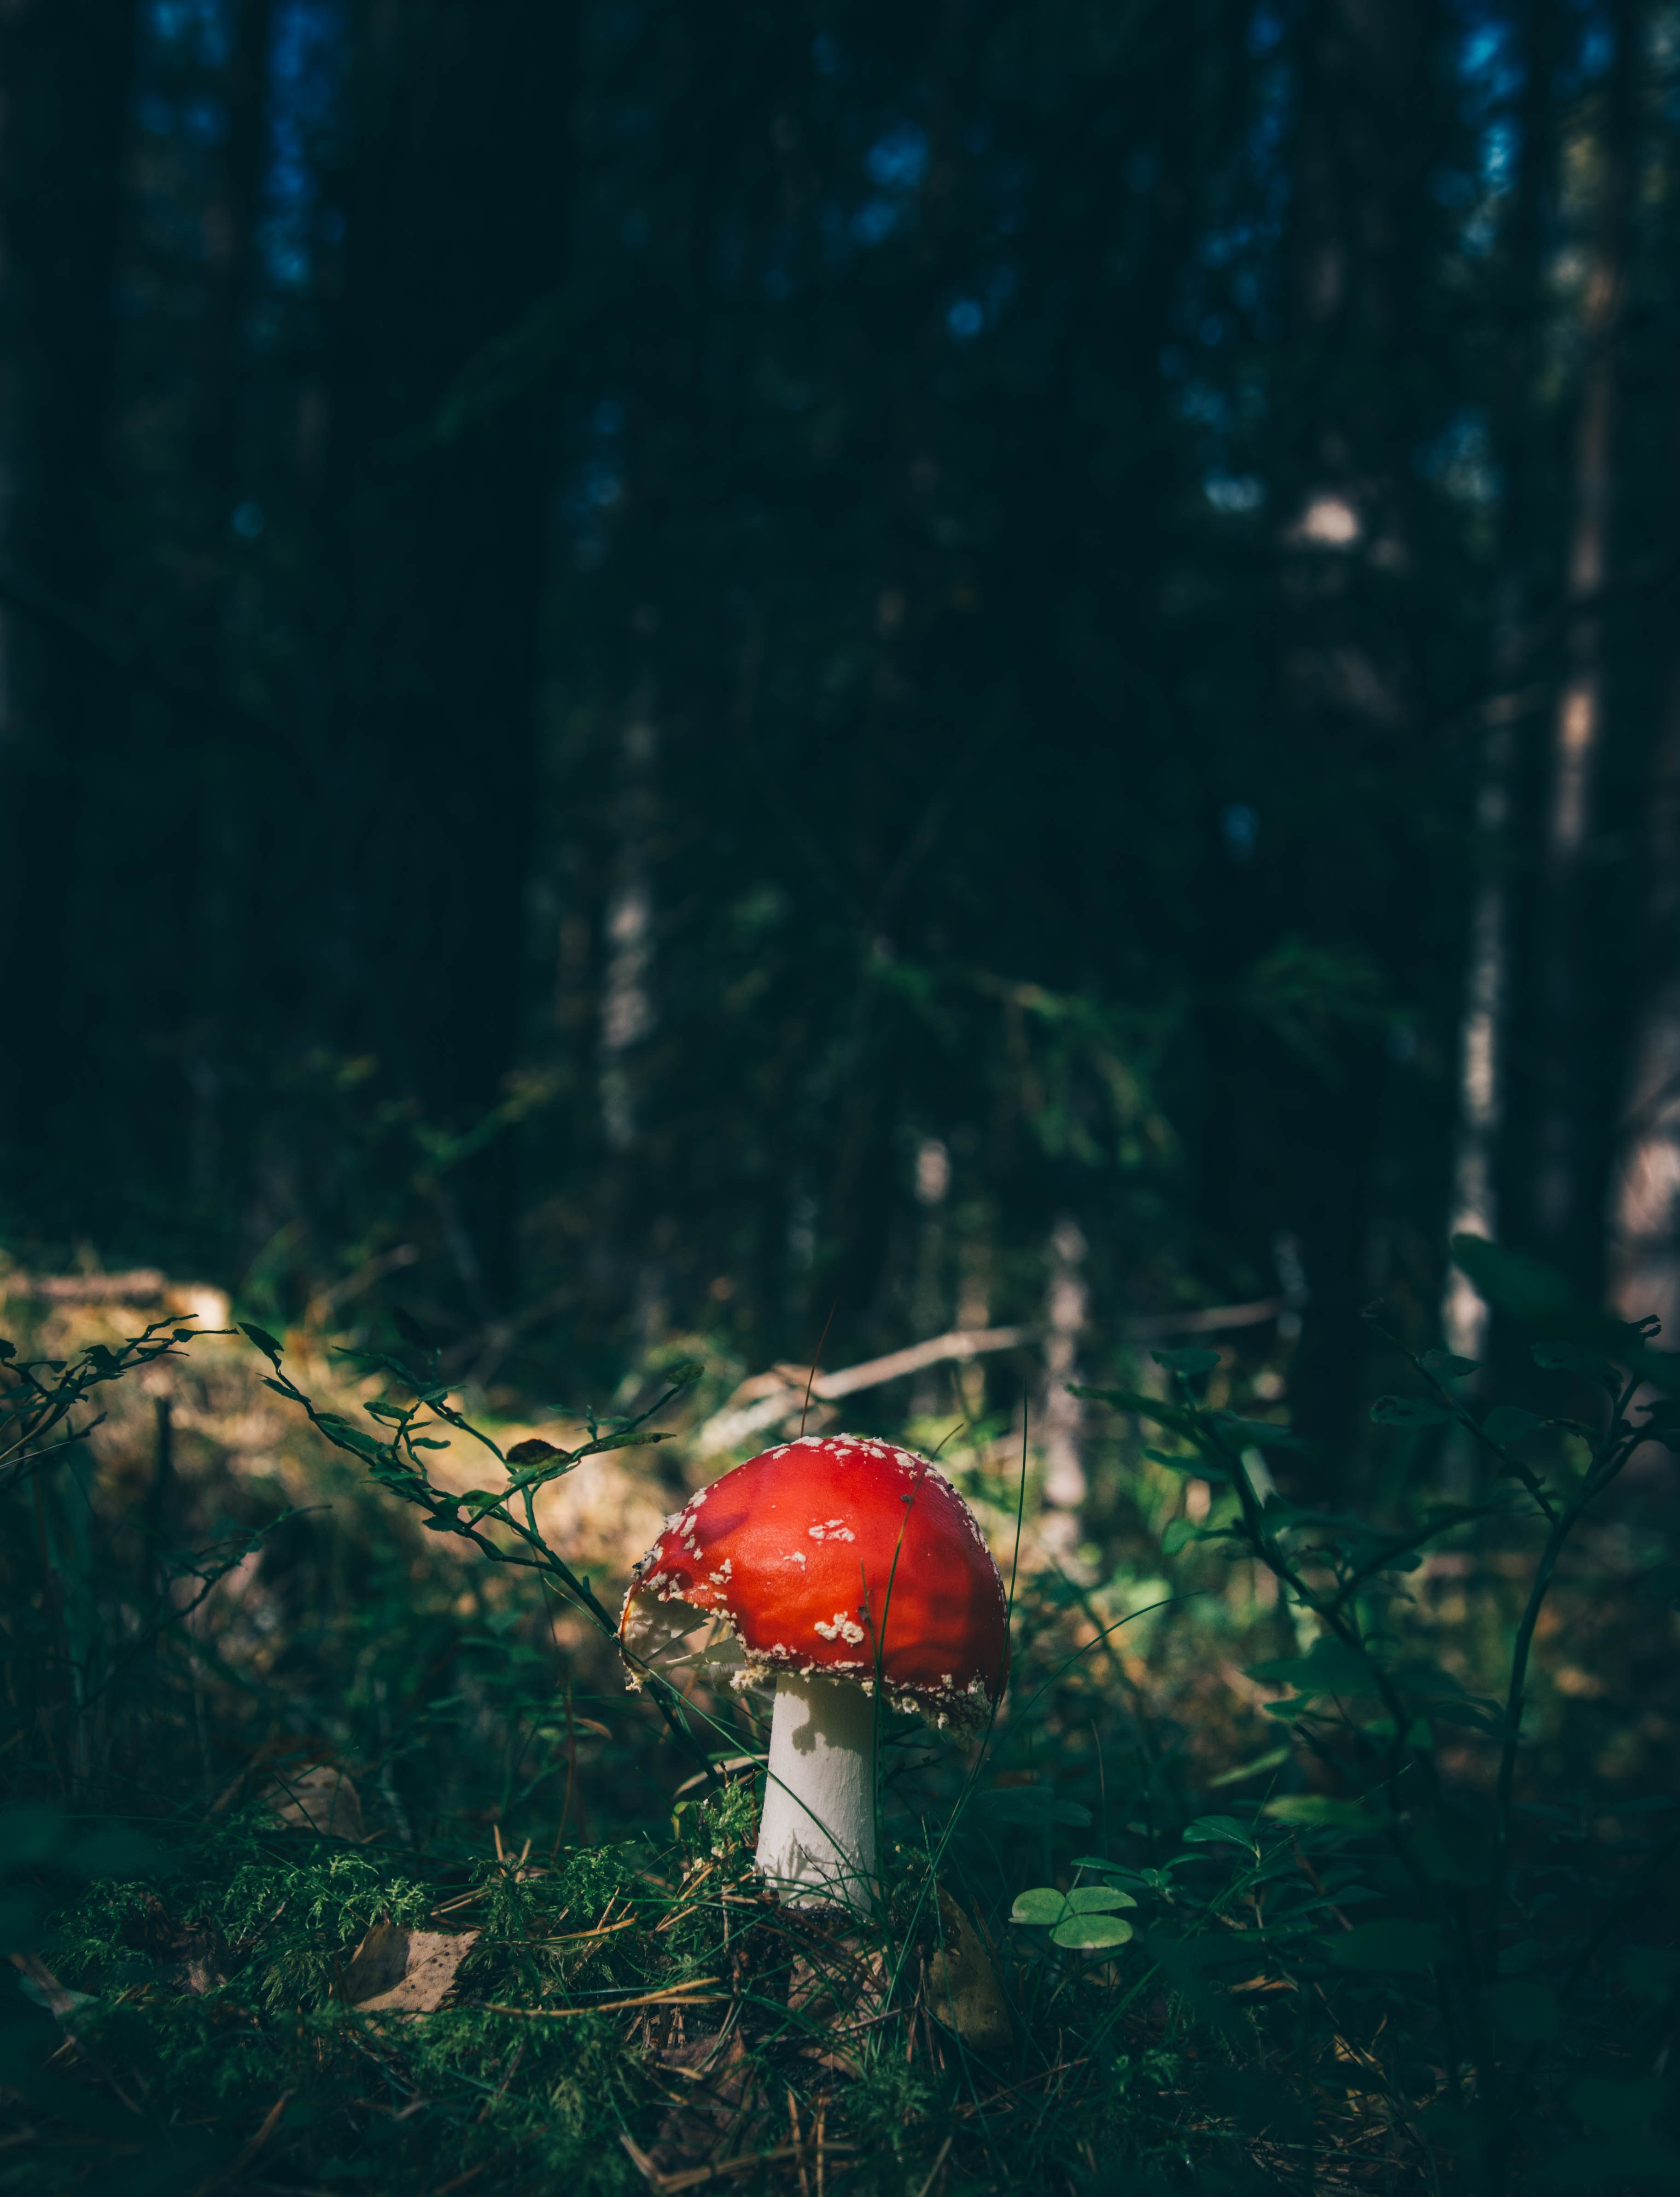 A bright red toadstool on the forest floor